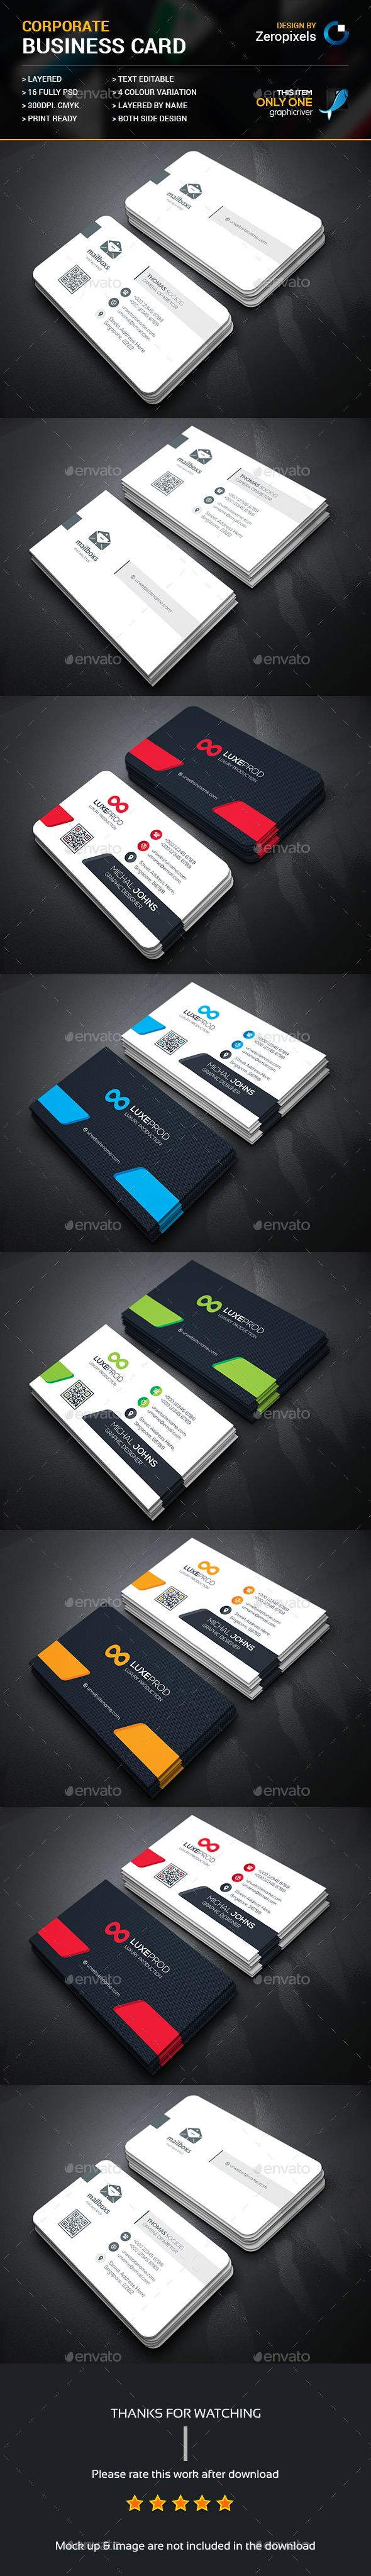 Business Card Bundle Templates PSD. Download here: http://graphicriver.net/item/business-card-bundle/16386105?ref=ksioks